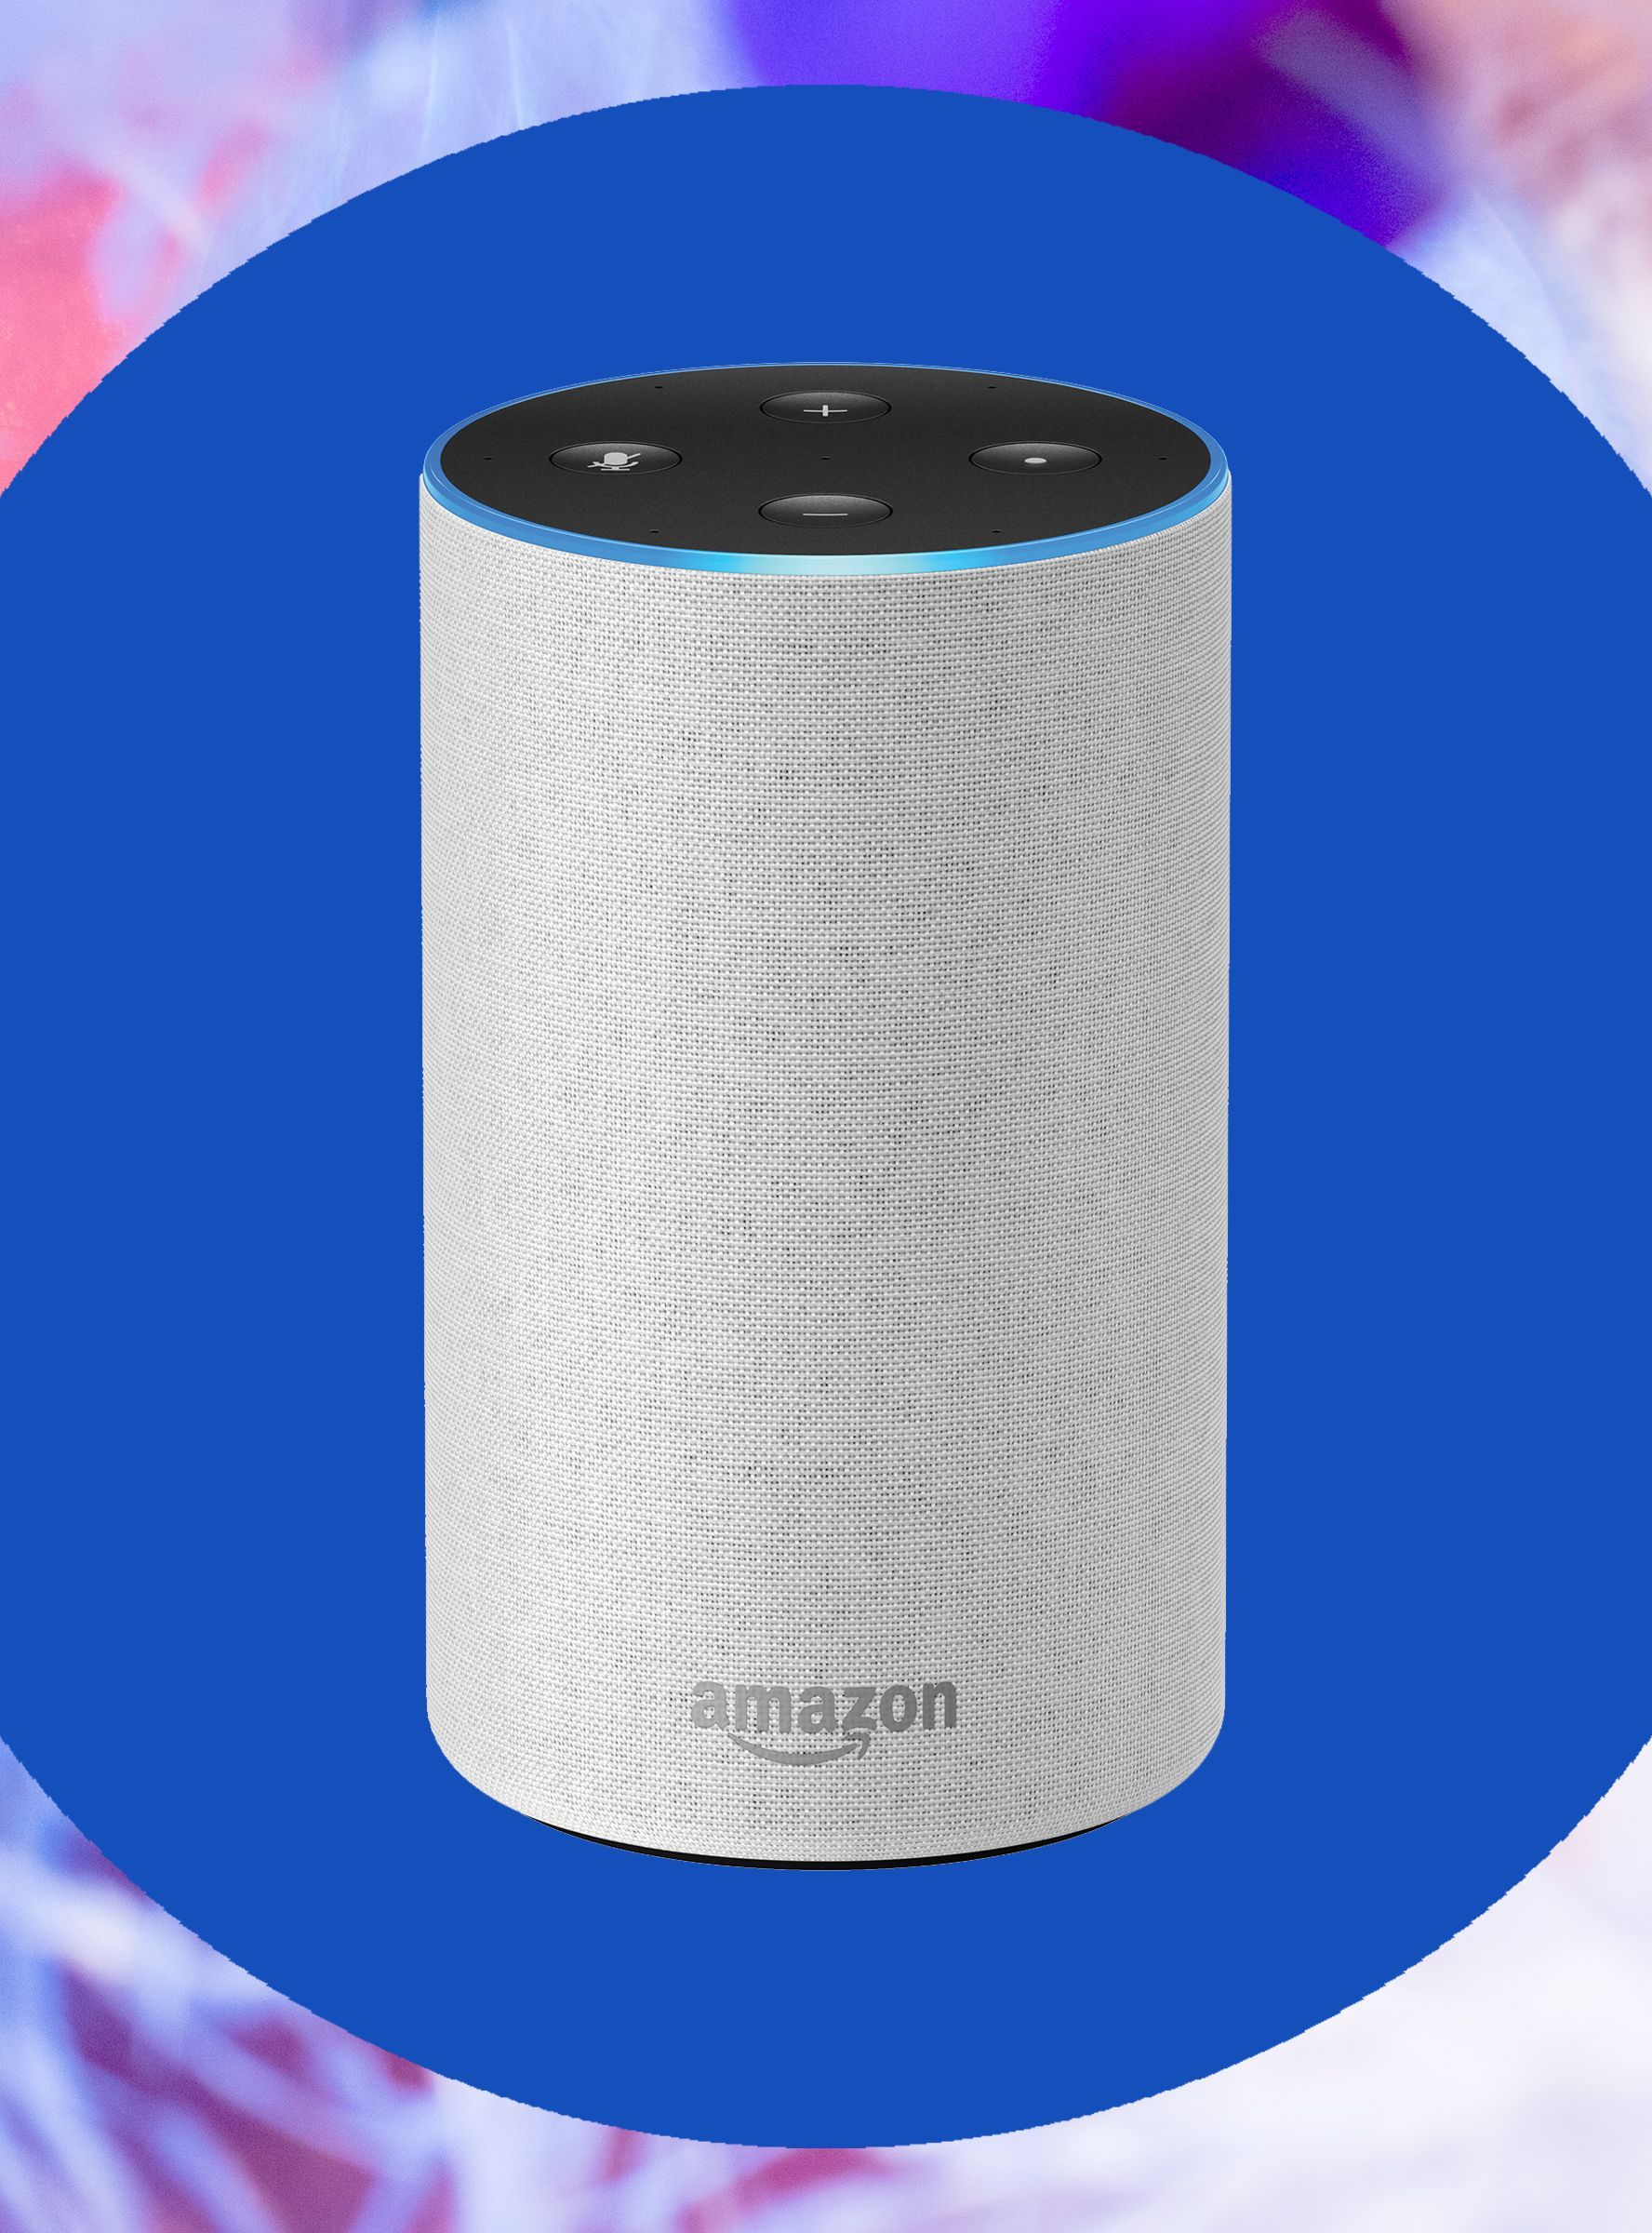 The Ultimate Guide To Alexa All The Things She Can Do